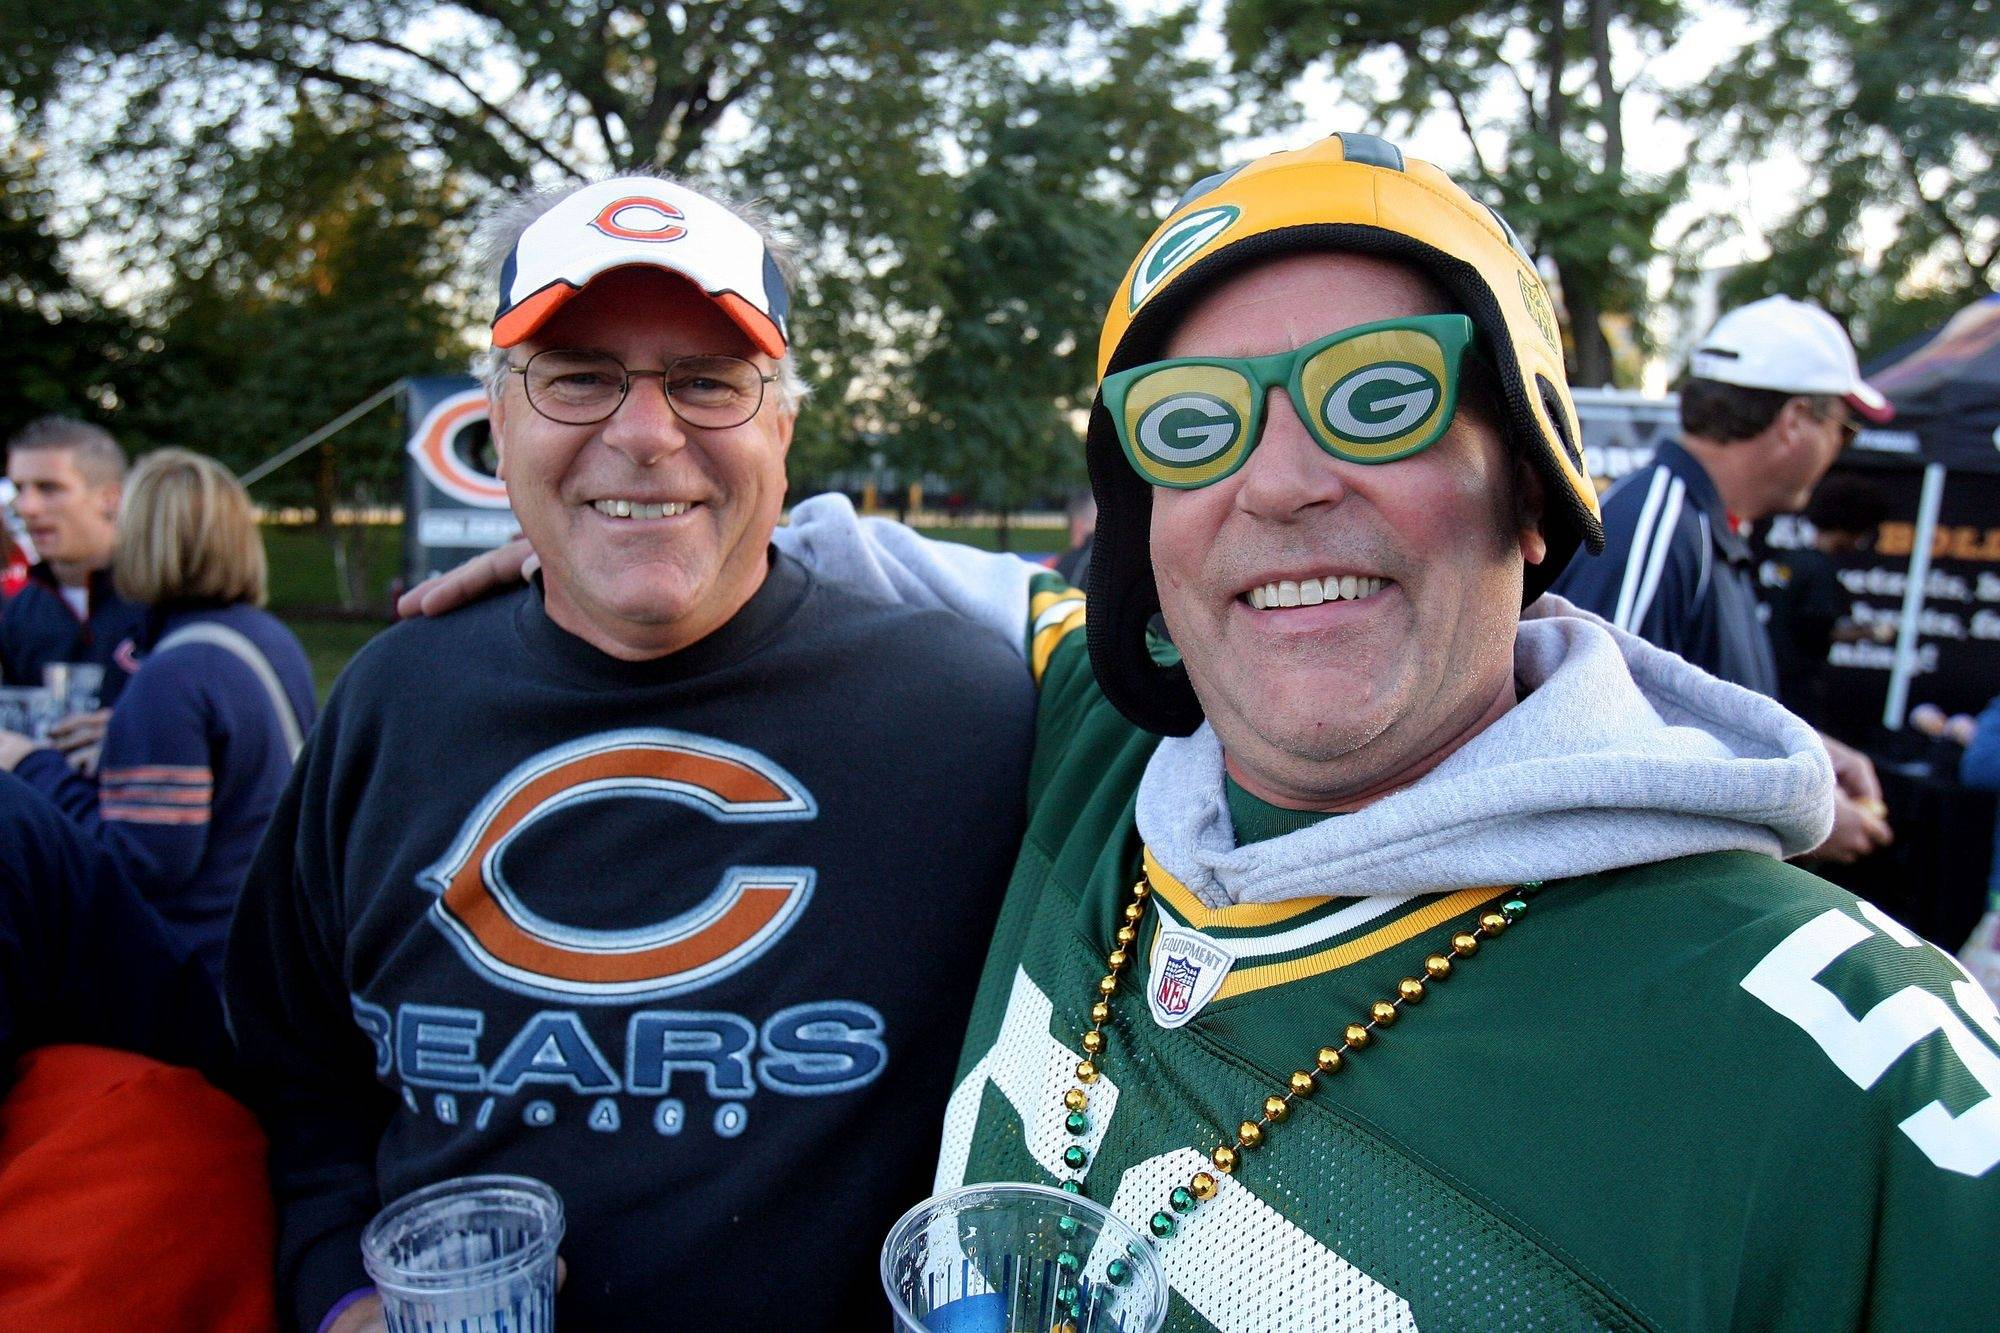 Brothers Bruce Lenth of Scottsdale, Arizona and Bill Lenth of Schaumburg show where their loyalties lie prior to the Bears Packers game Monday night at Soldier Field in Chicago.